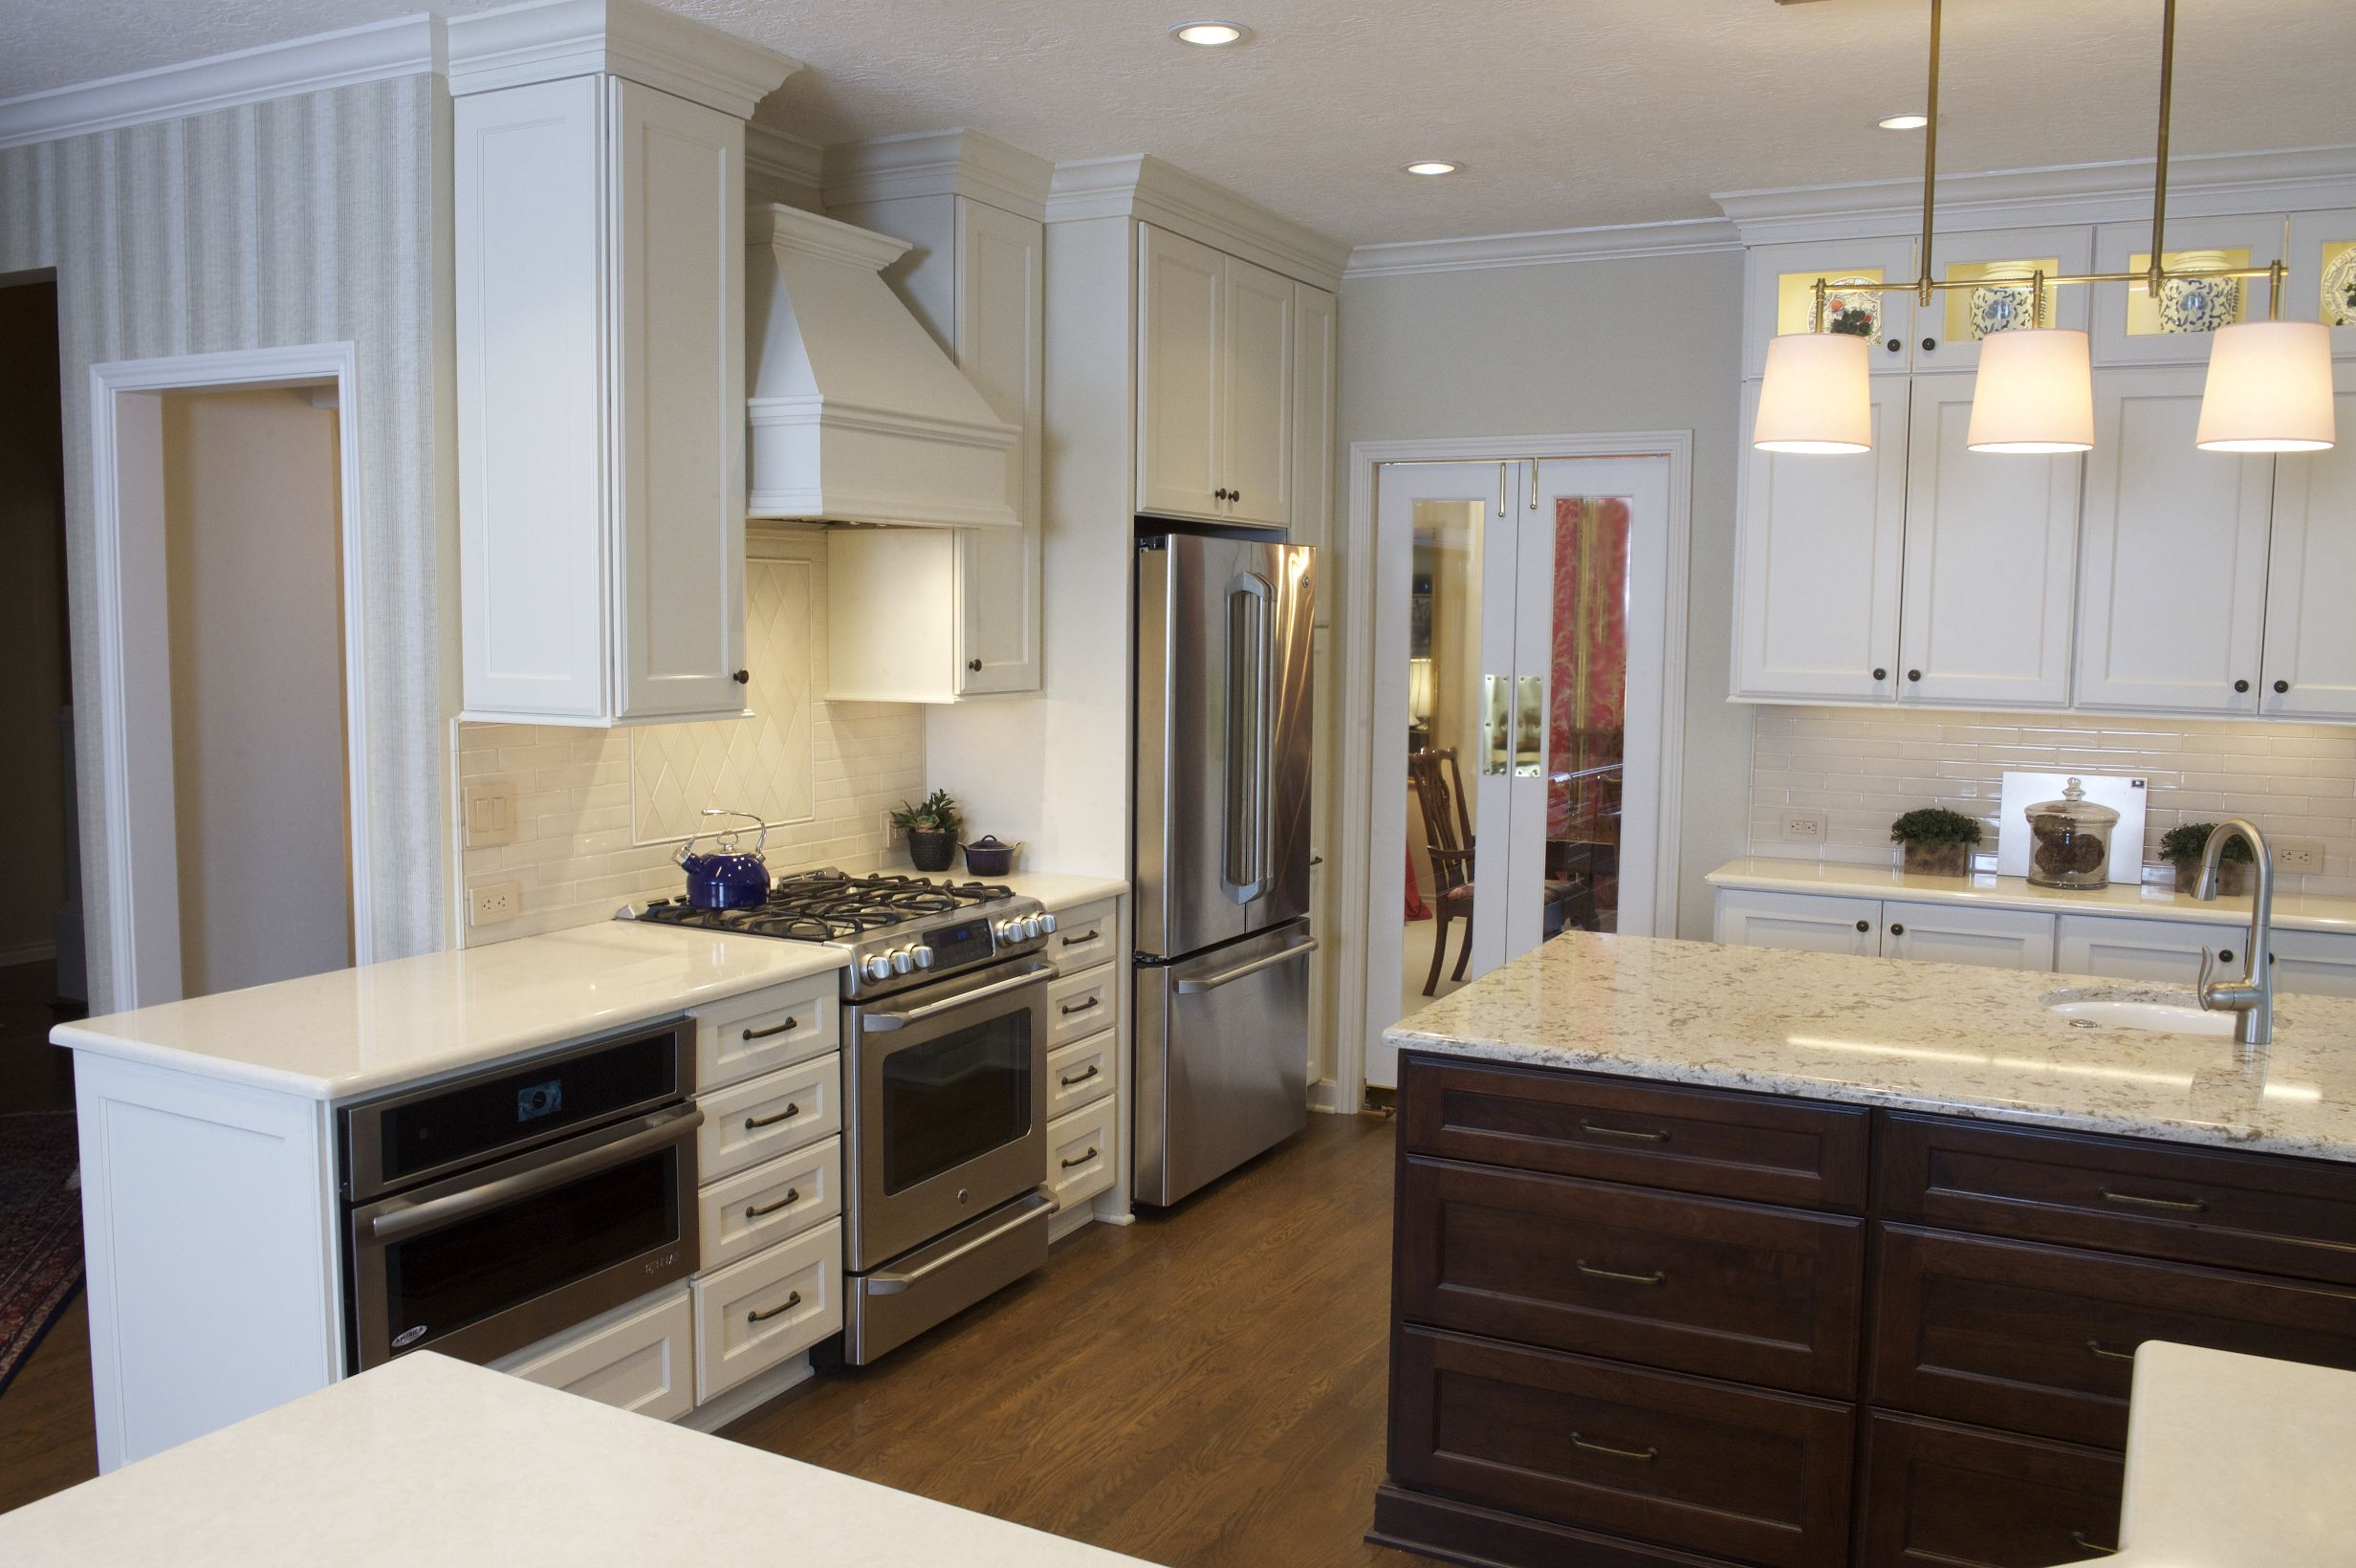 Pin By Parr Cabinet Design Center On West Hills Remodel Kitchen Cabinets Remodel Kitchen